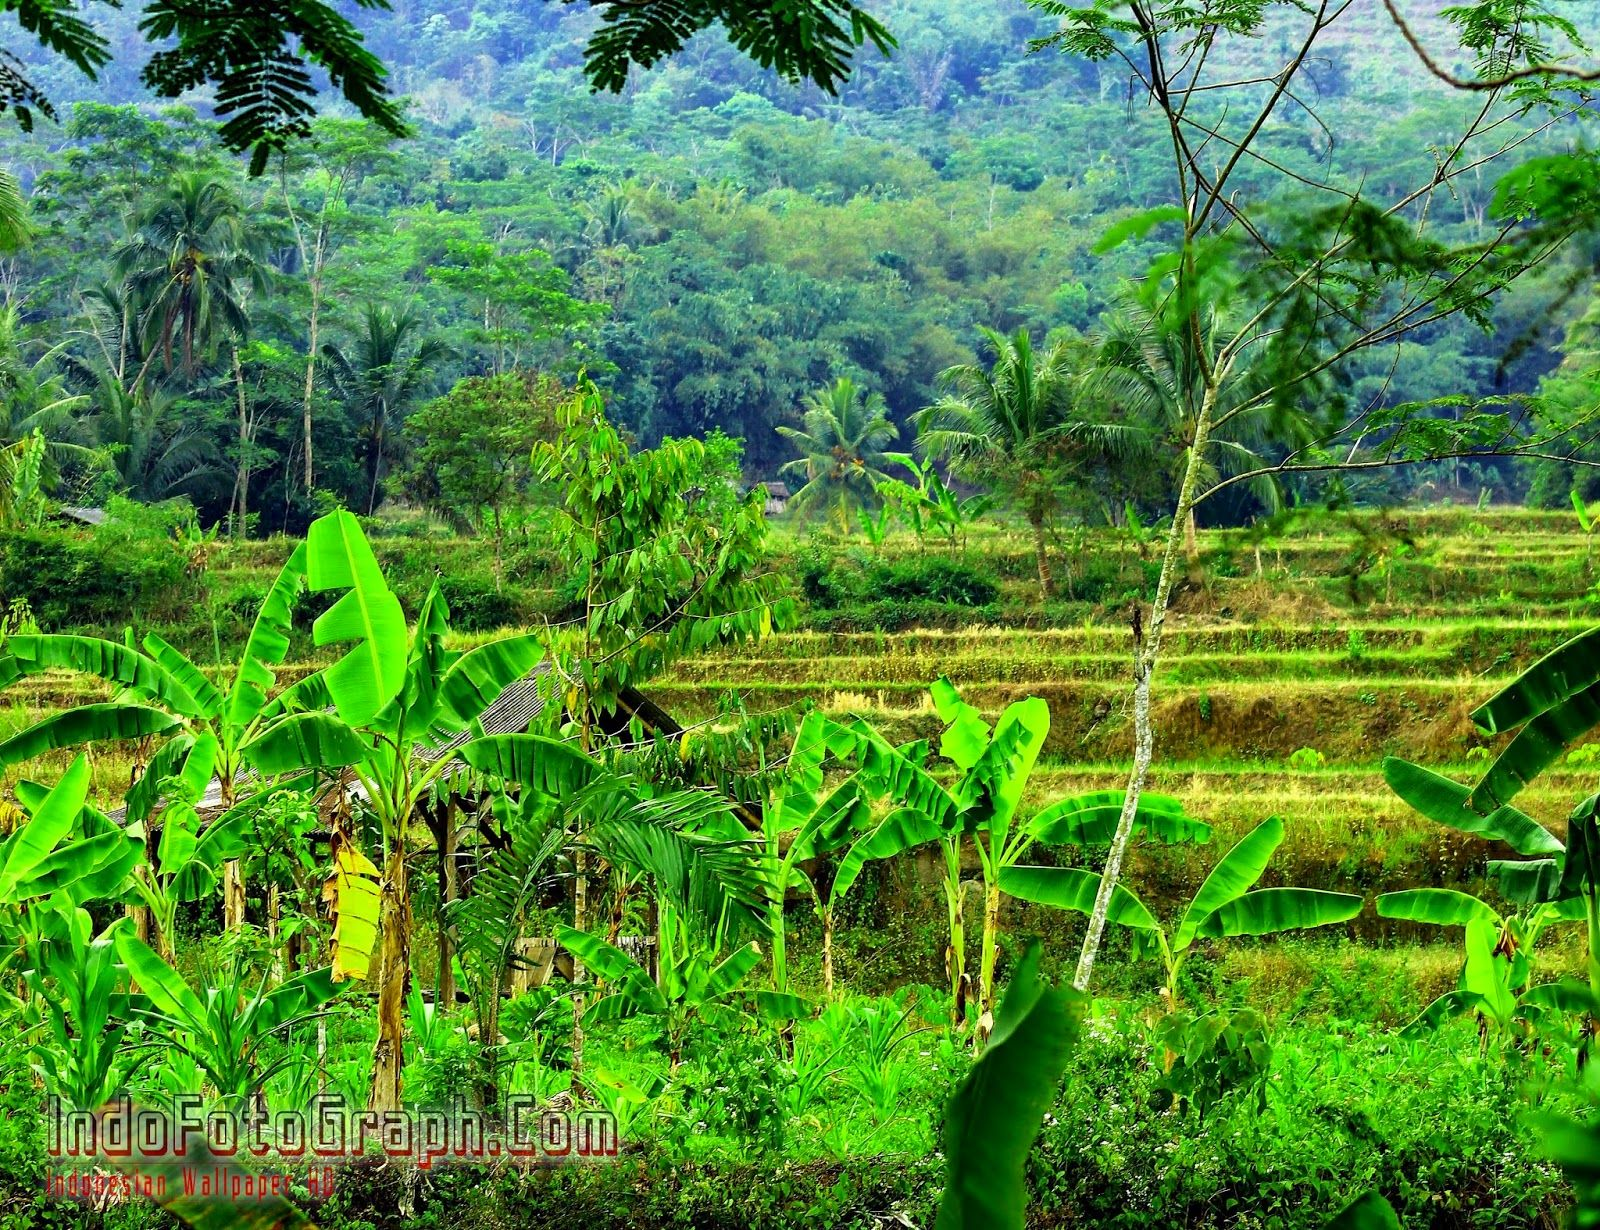 "download wallpaper pemandangan alam indonesia indofotograph coma""¢"